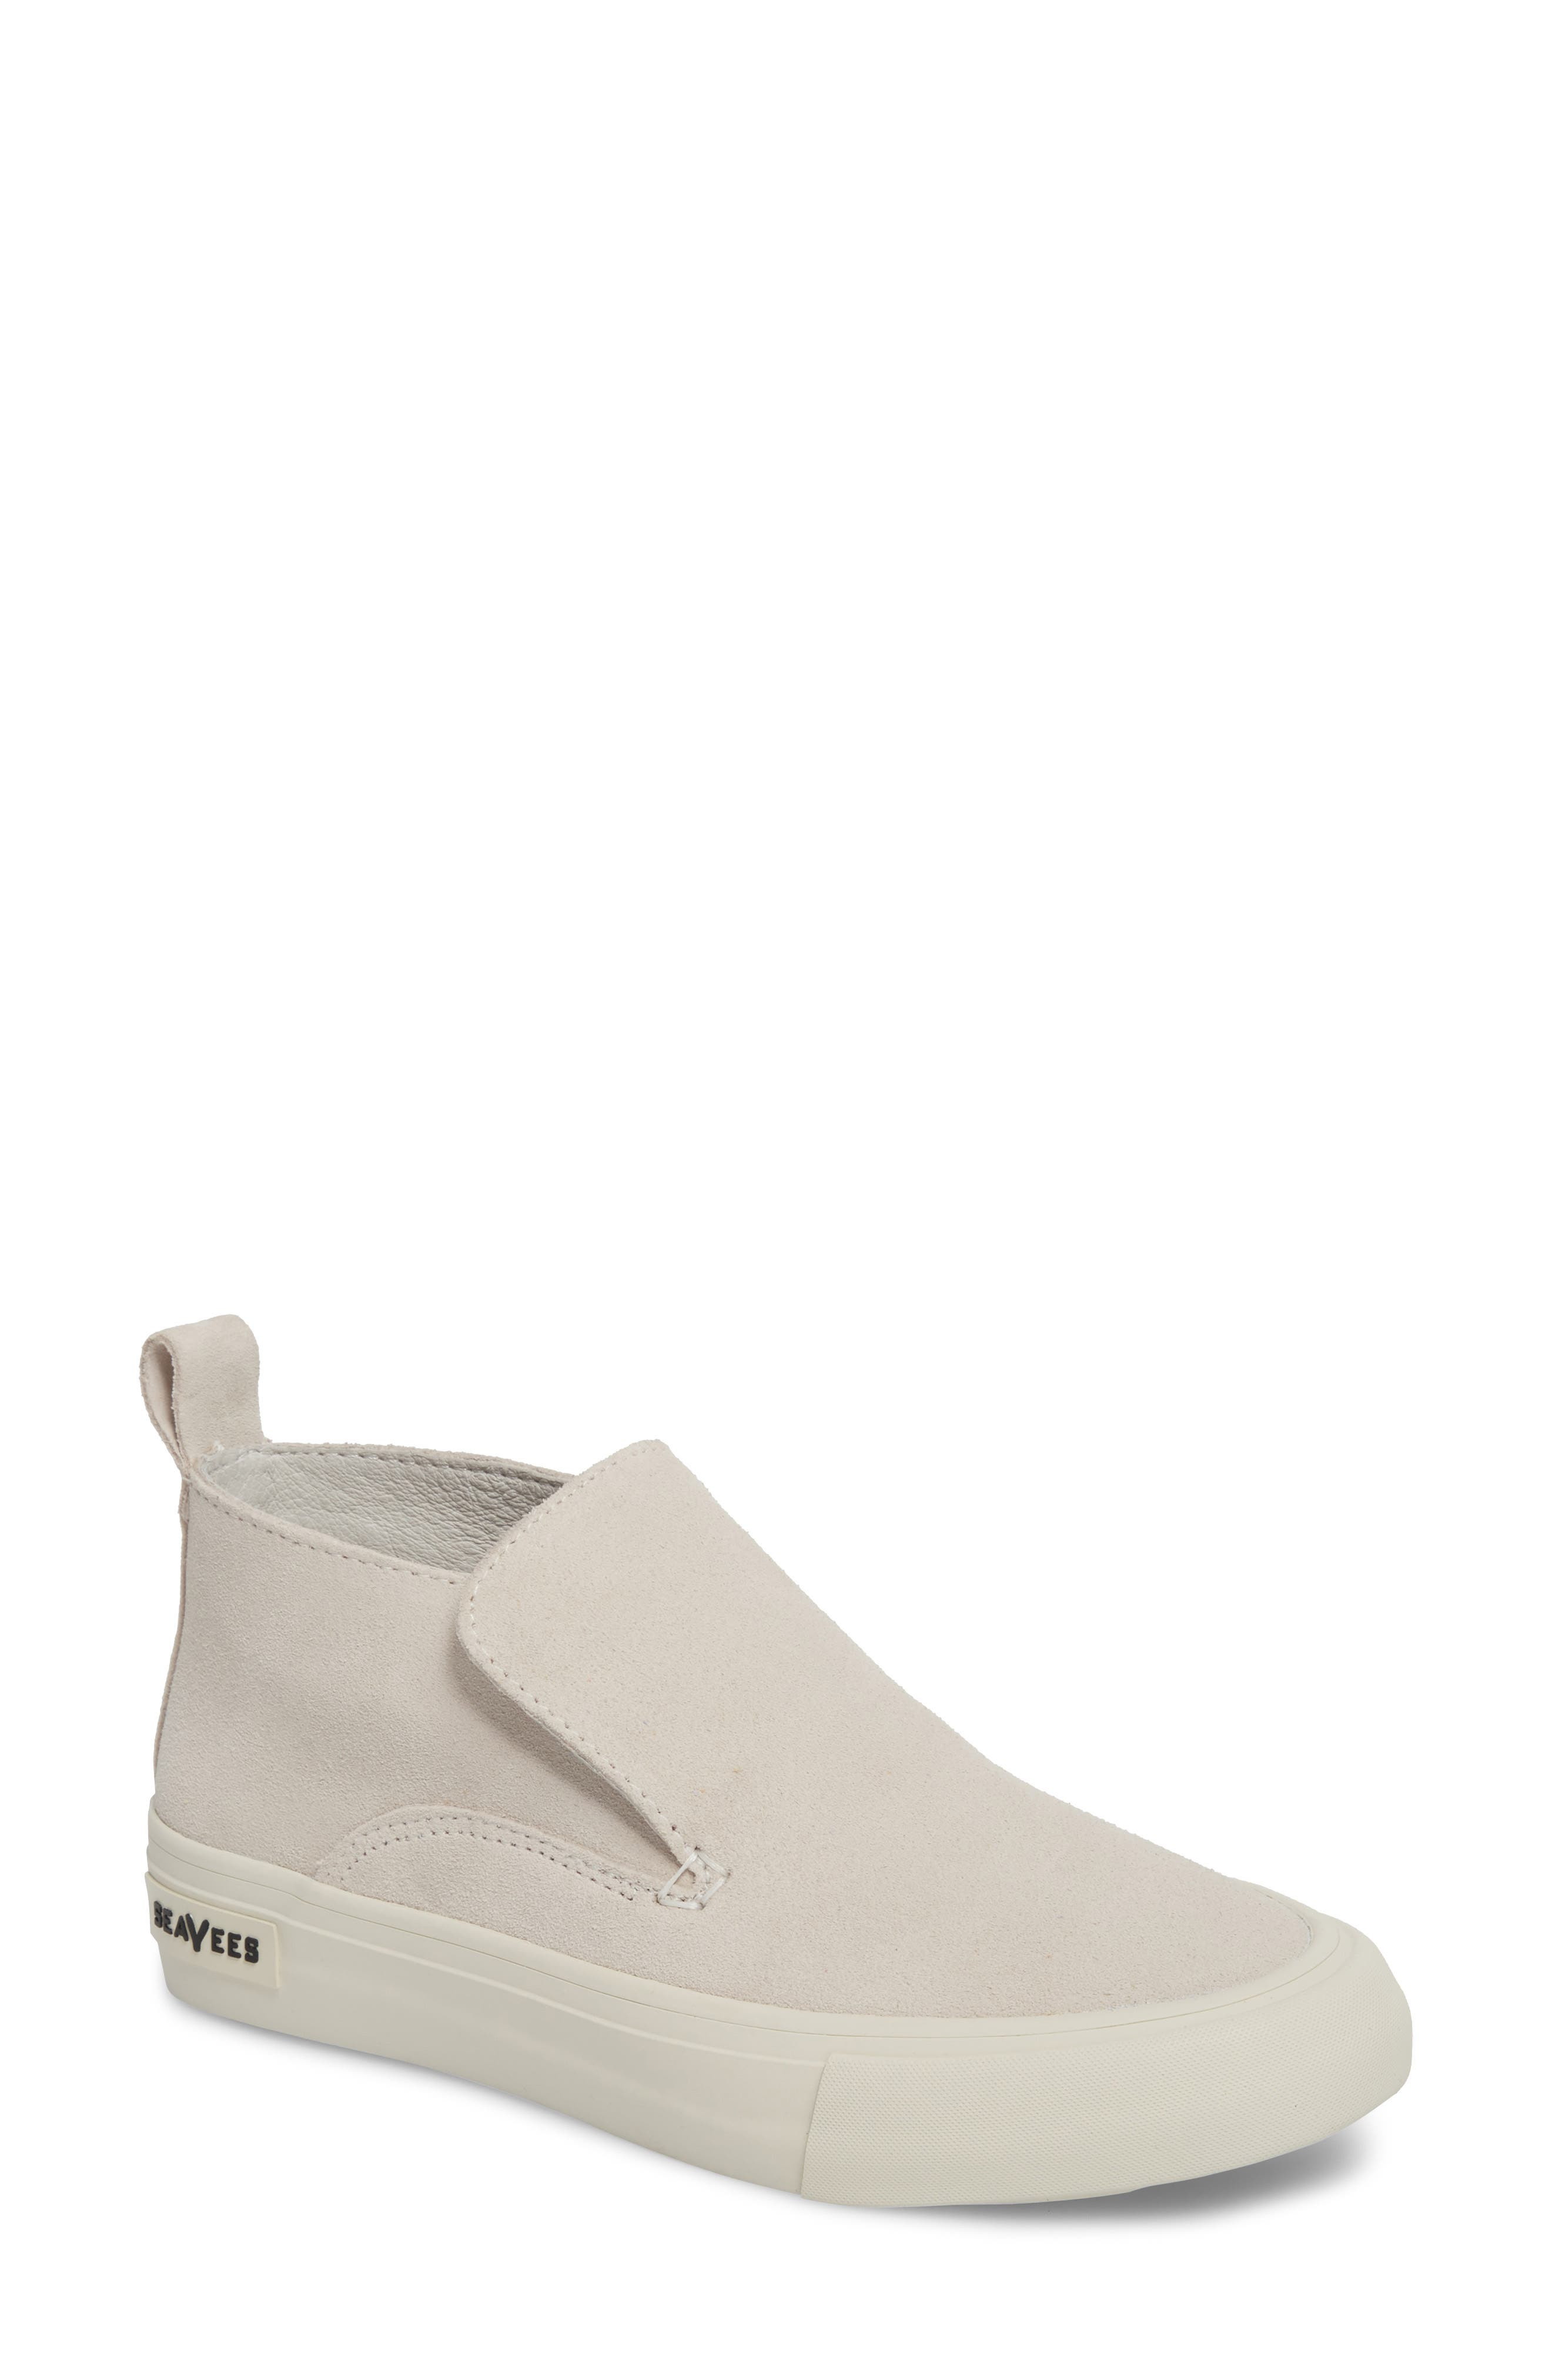 Huntington Middie Slip-On Sneaker,                             Main thumbnail 1, color,                             OYSTER